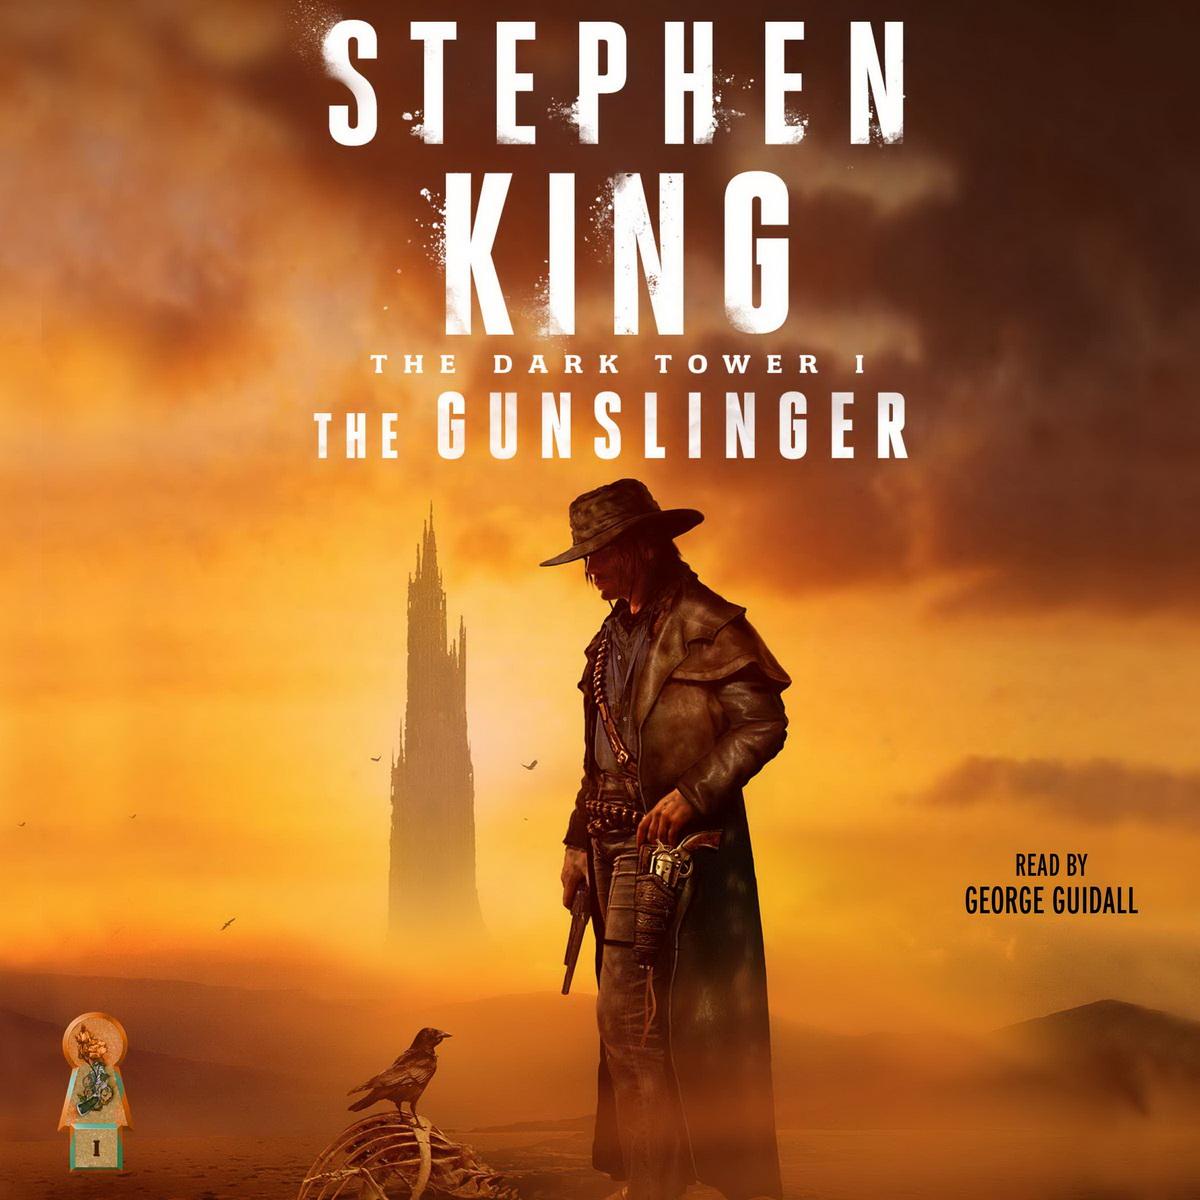 Backlog Review: The Dark Tower I: The Gunslinger